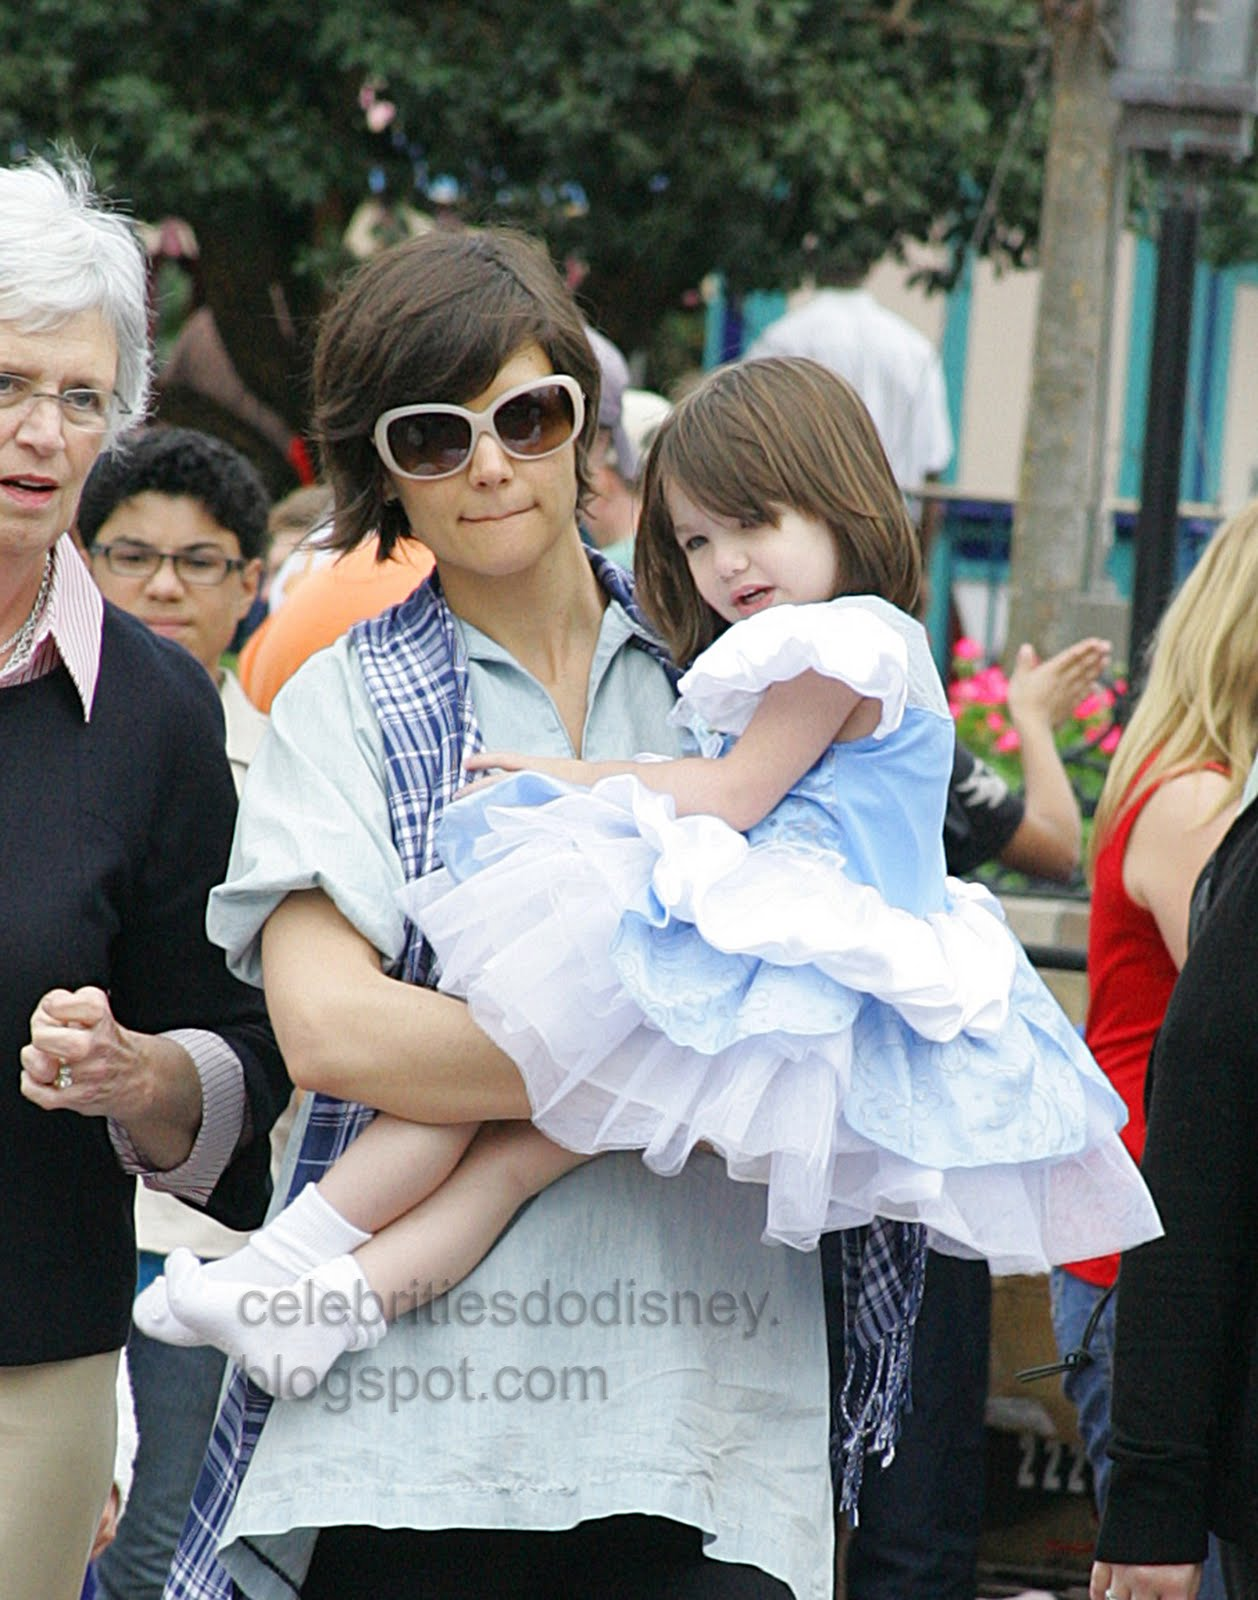 Celebrities Do Disney: Katie Holmes and Suri Cruise